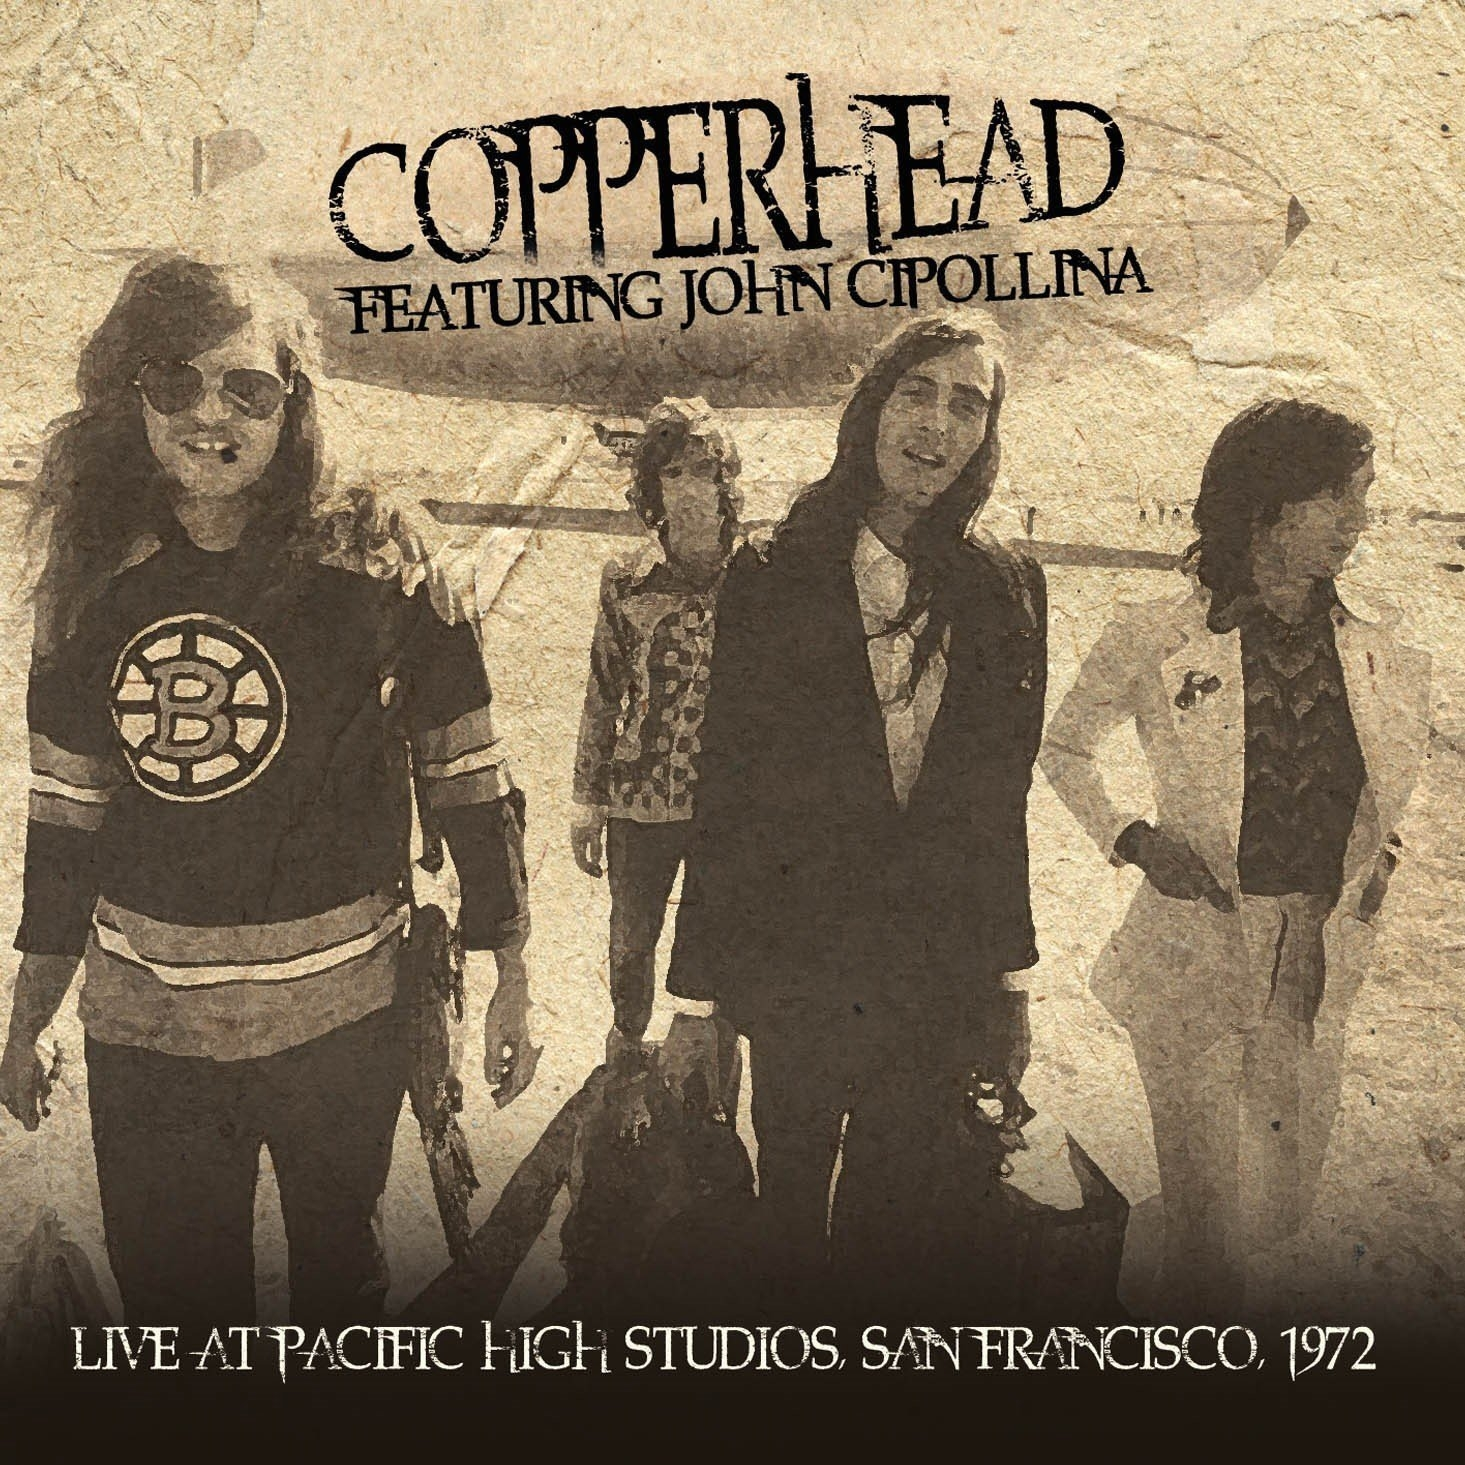 Live At Pacific High Recording Studios Jan 23, 1972 (Live FM Radio Concert In Superb Fidelity - Remastered)